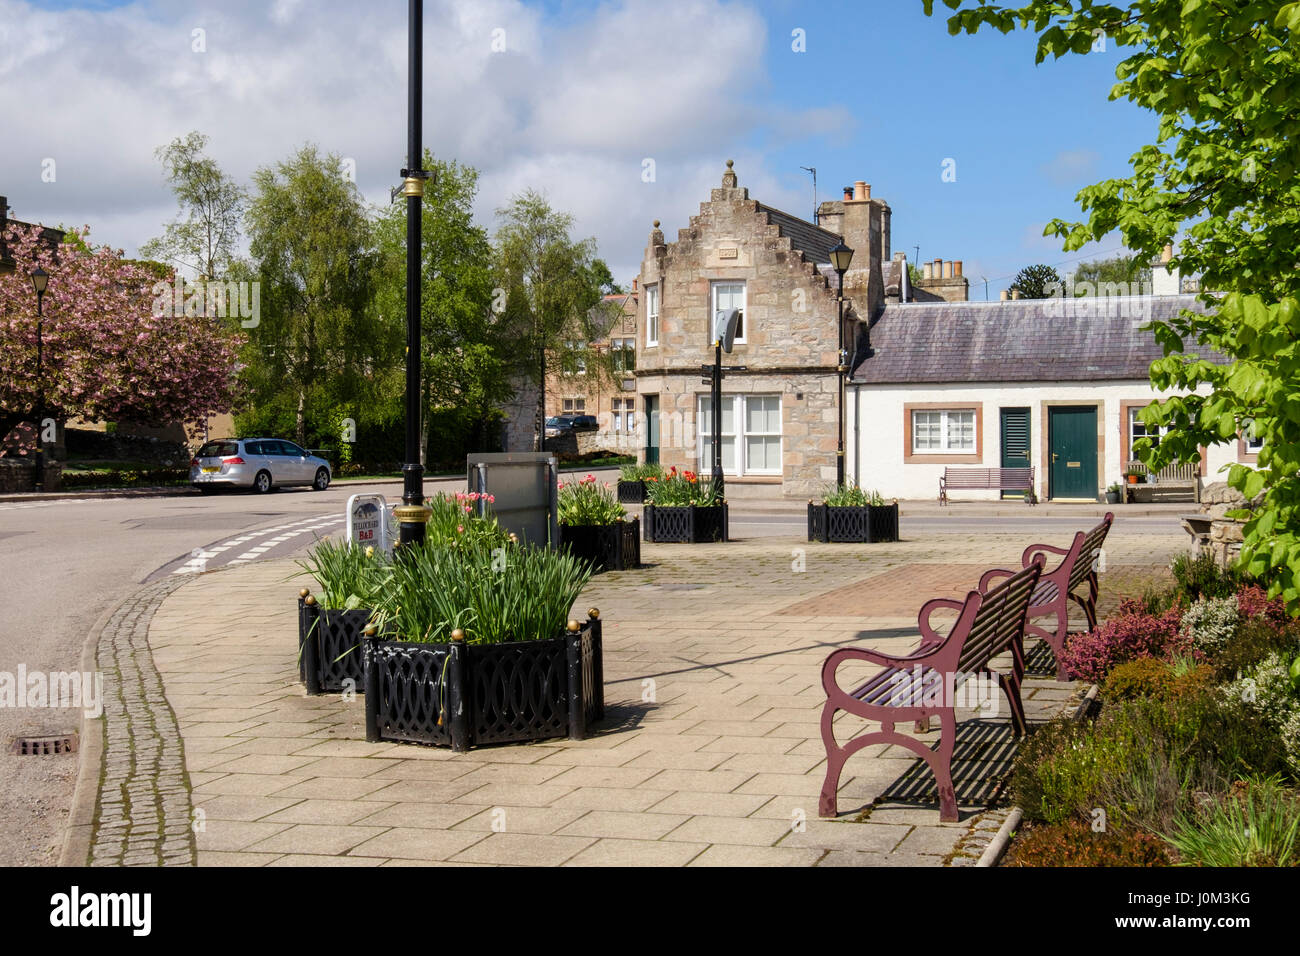 Bench seats in centre of historic small Scottish town. Royal Burgh of Dornoch, Sutherland, Highland, Scotland, UK, - Stock Image